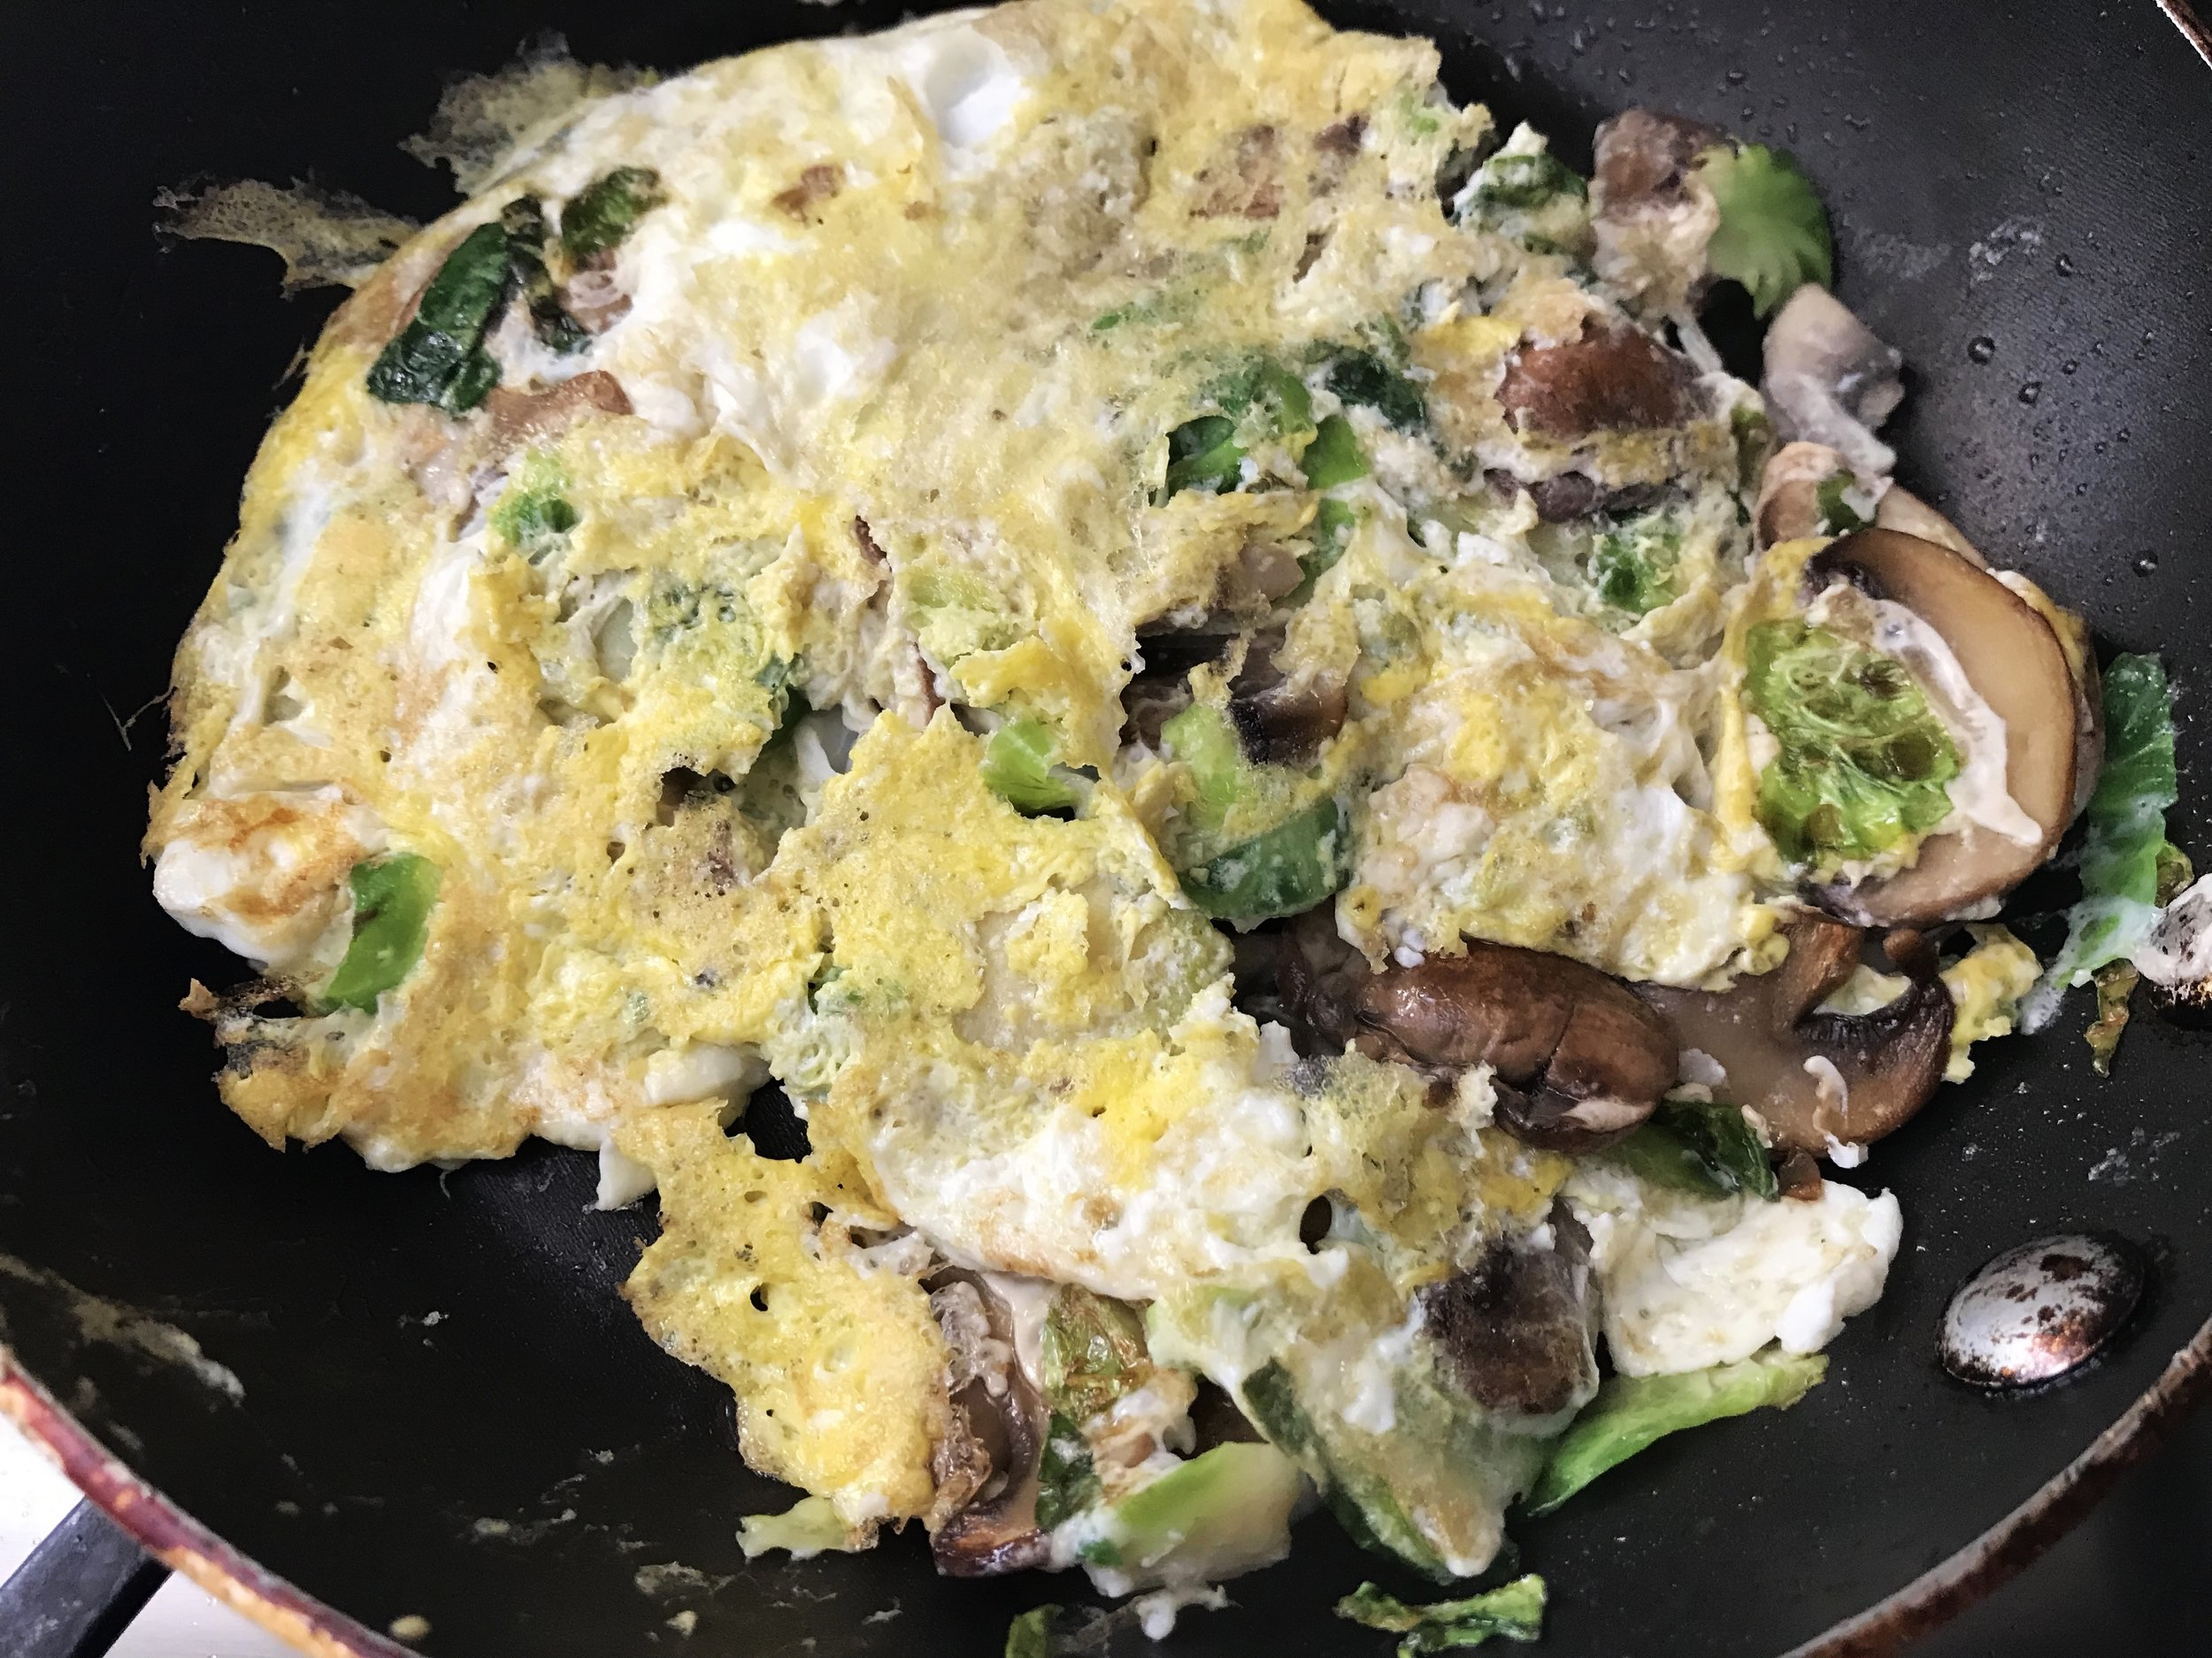 Add 1 egg and 1 egg white and scramble. I don't care so much to make a beautiful omelette, just scramble it and flip it over!